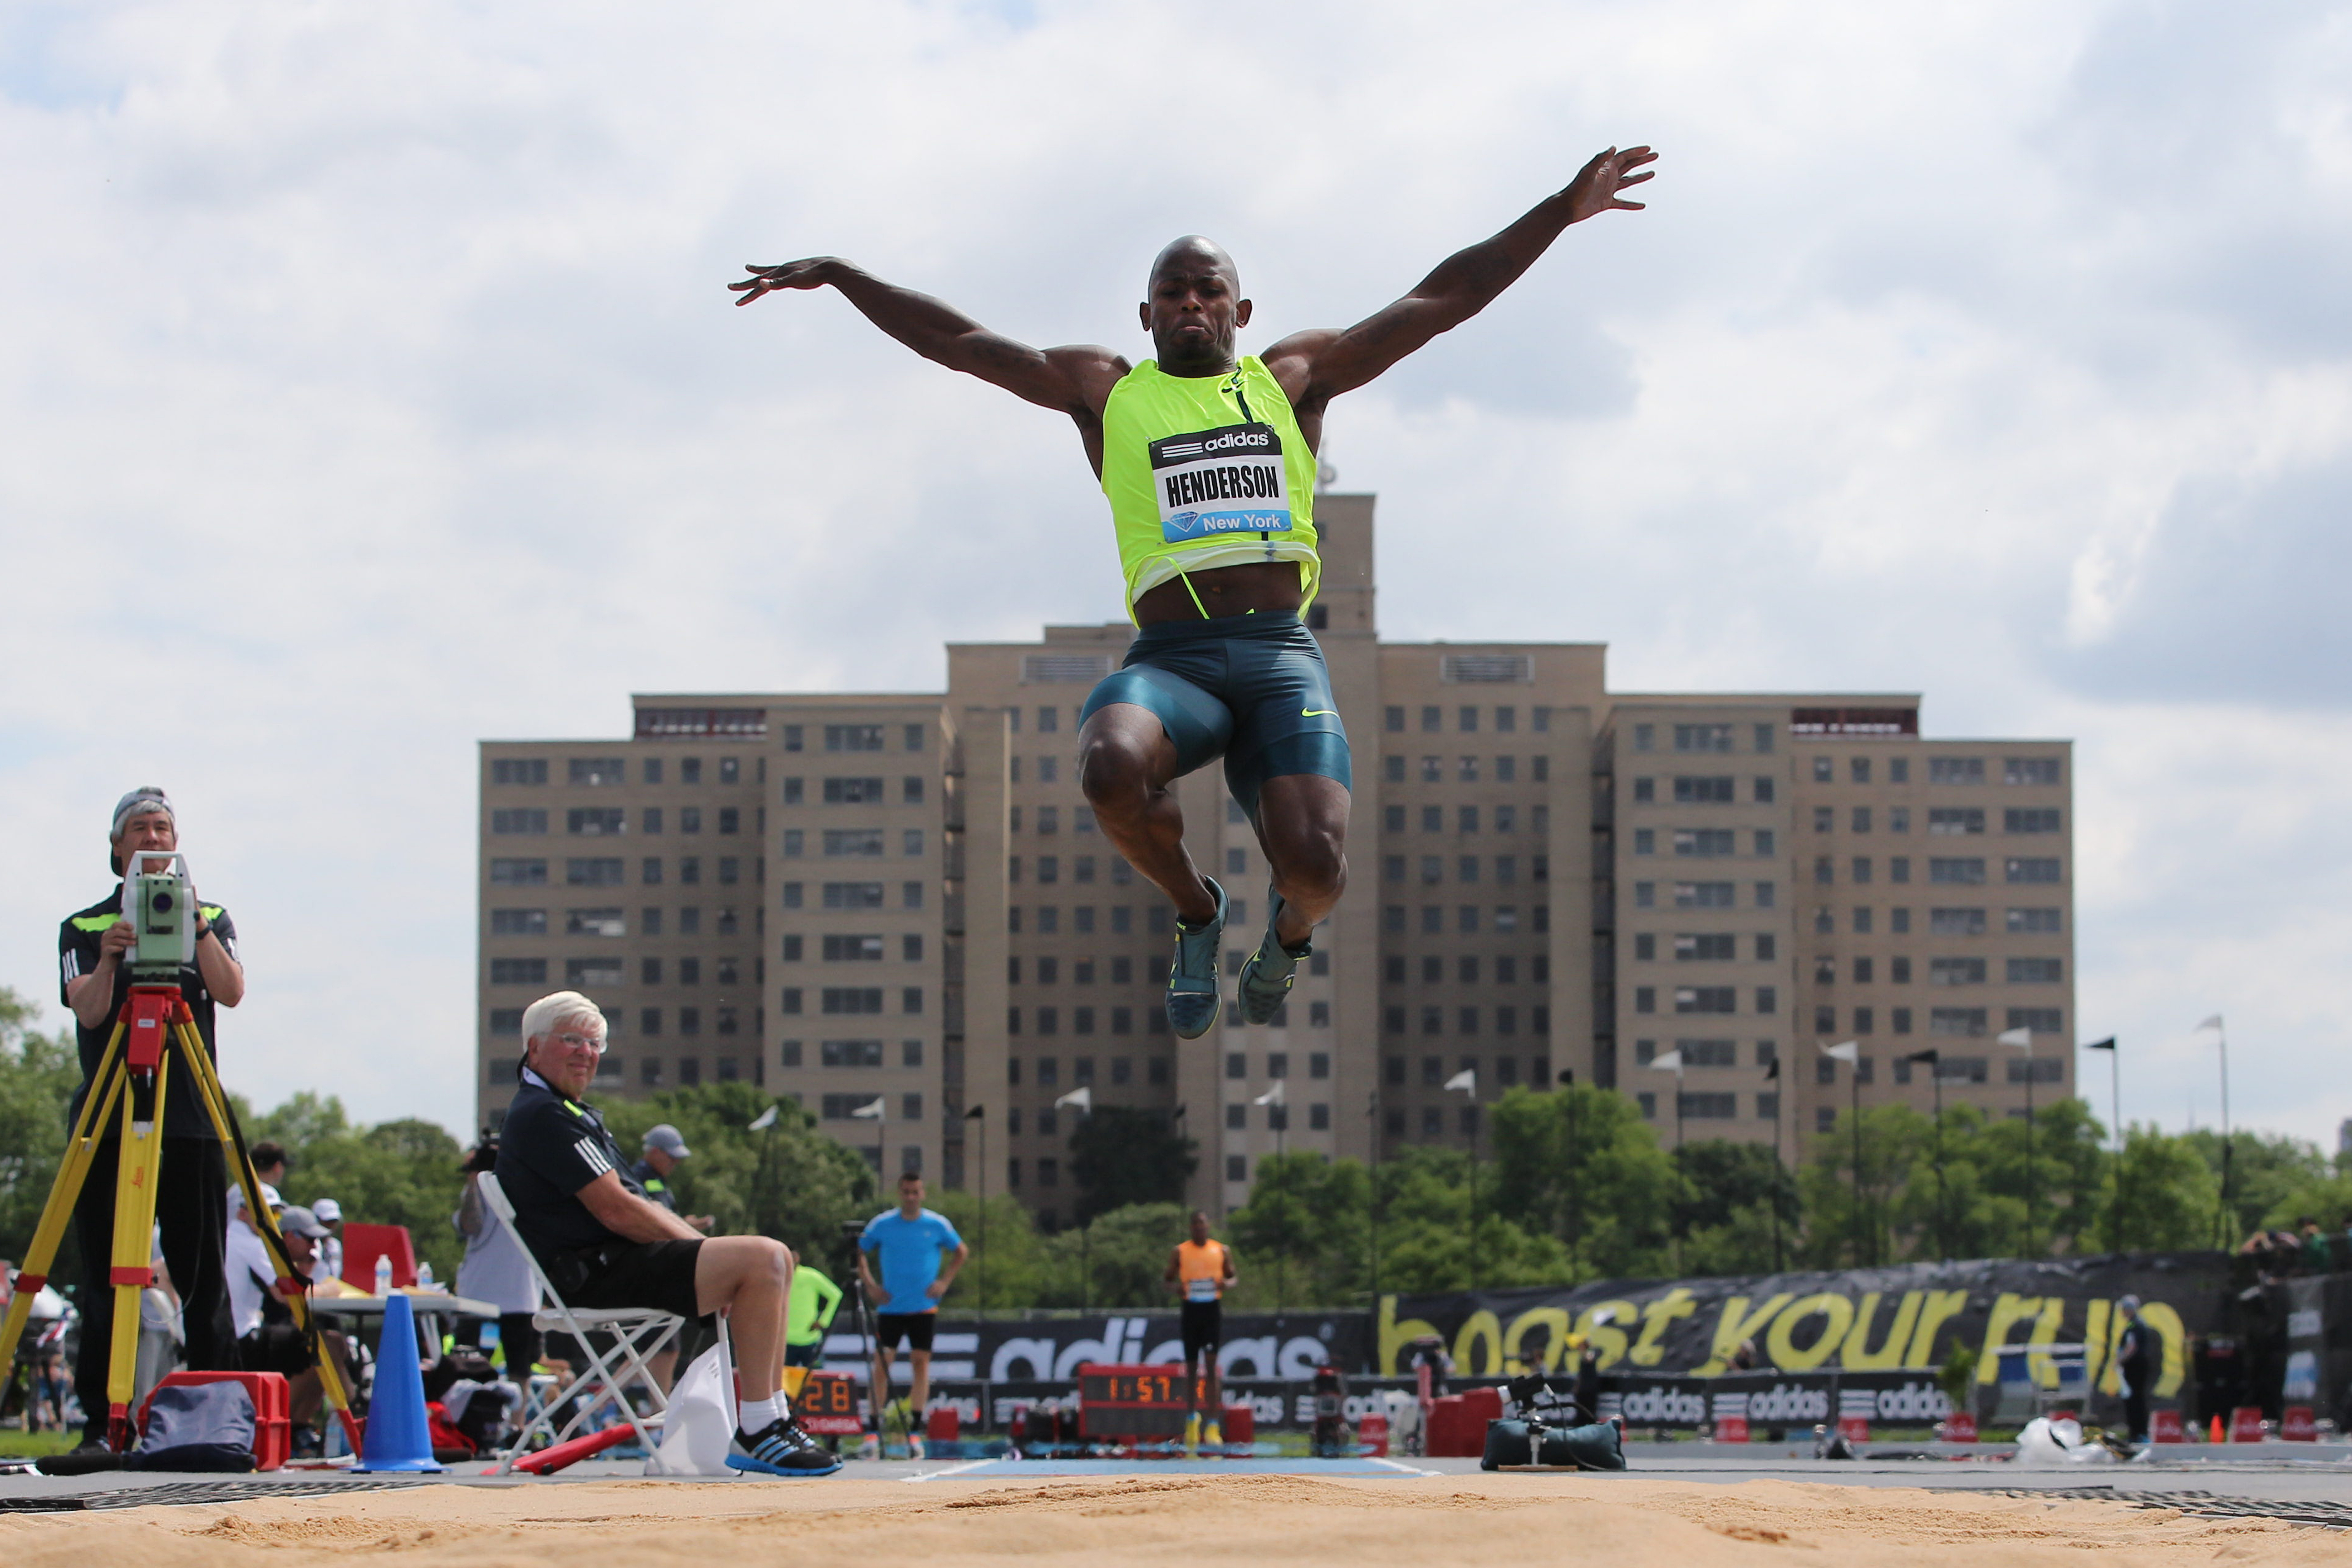 Jeff Henderson, USA, in action while winning the Men's Long Jump competition during the Diamond League Adidas Grand Prix at Icahn Stadium, Randall's Island, Manhattan, New York, USA. 14th June 2014.